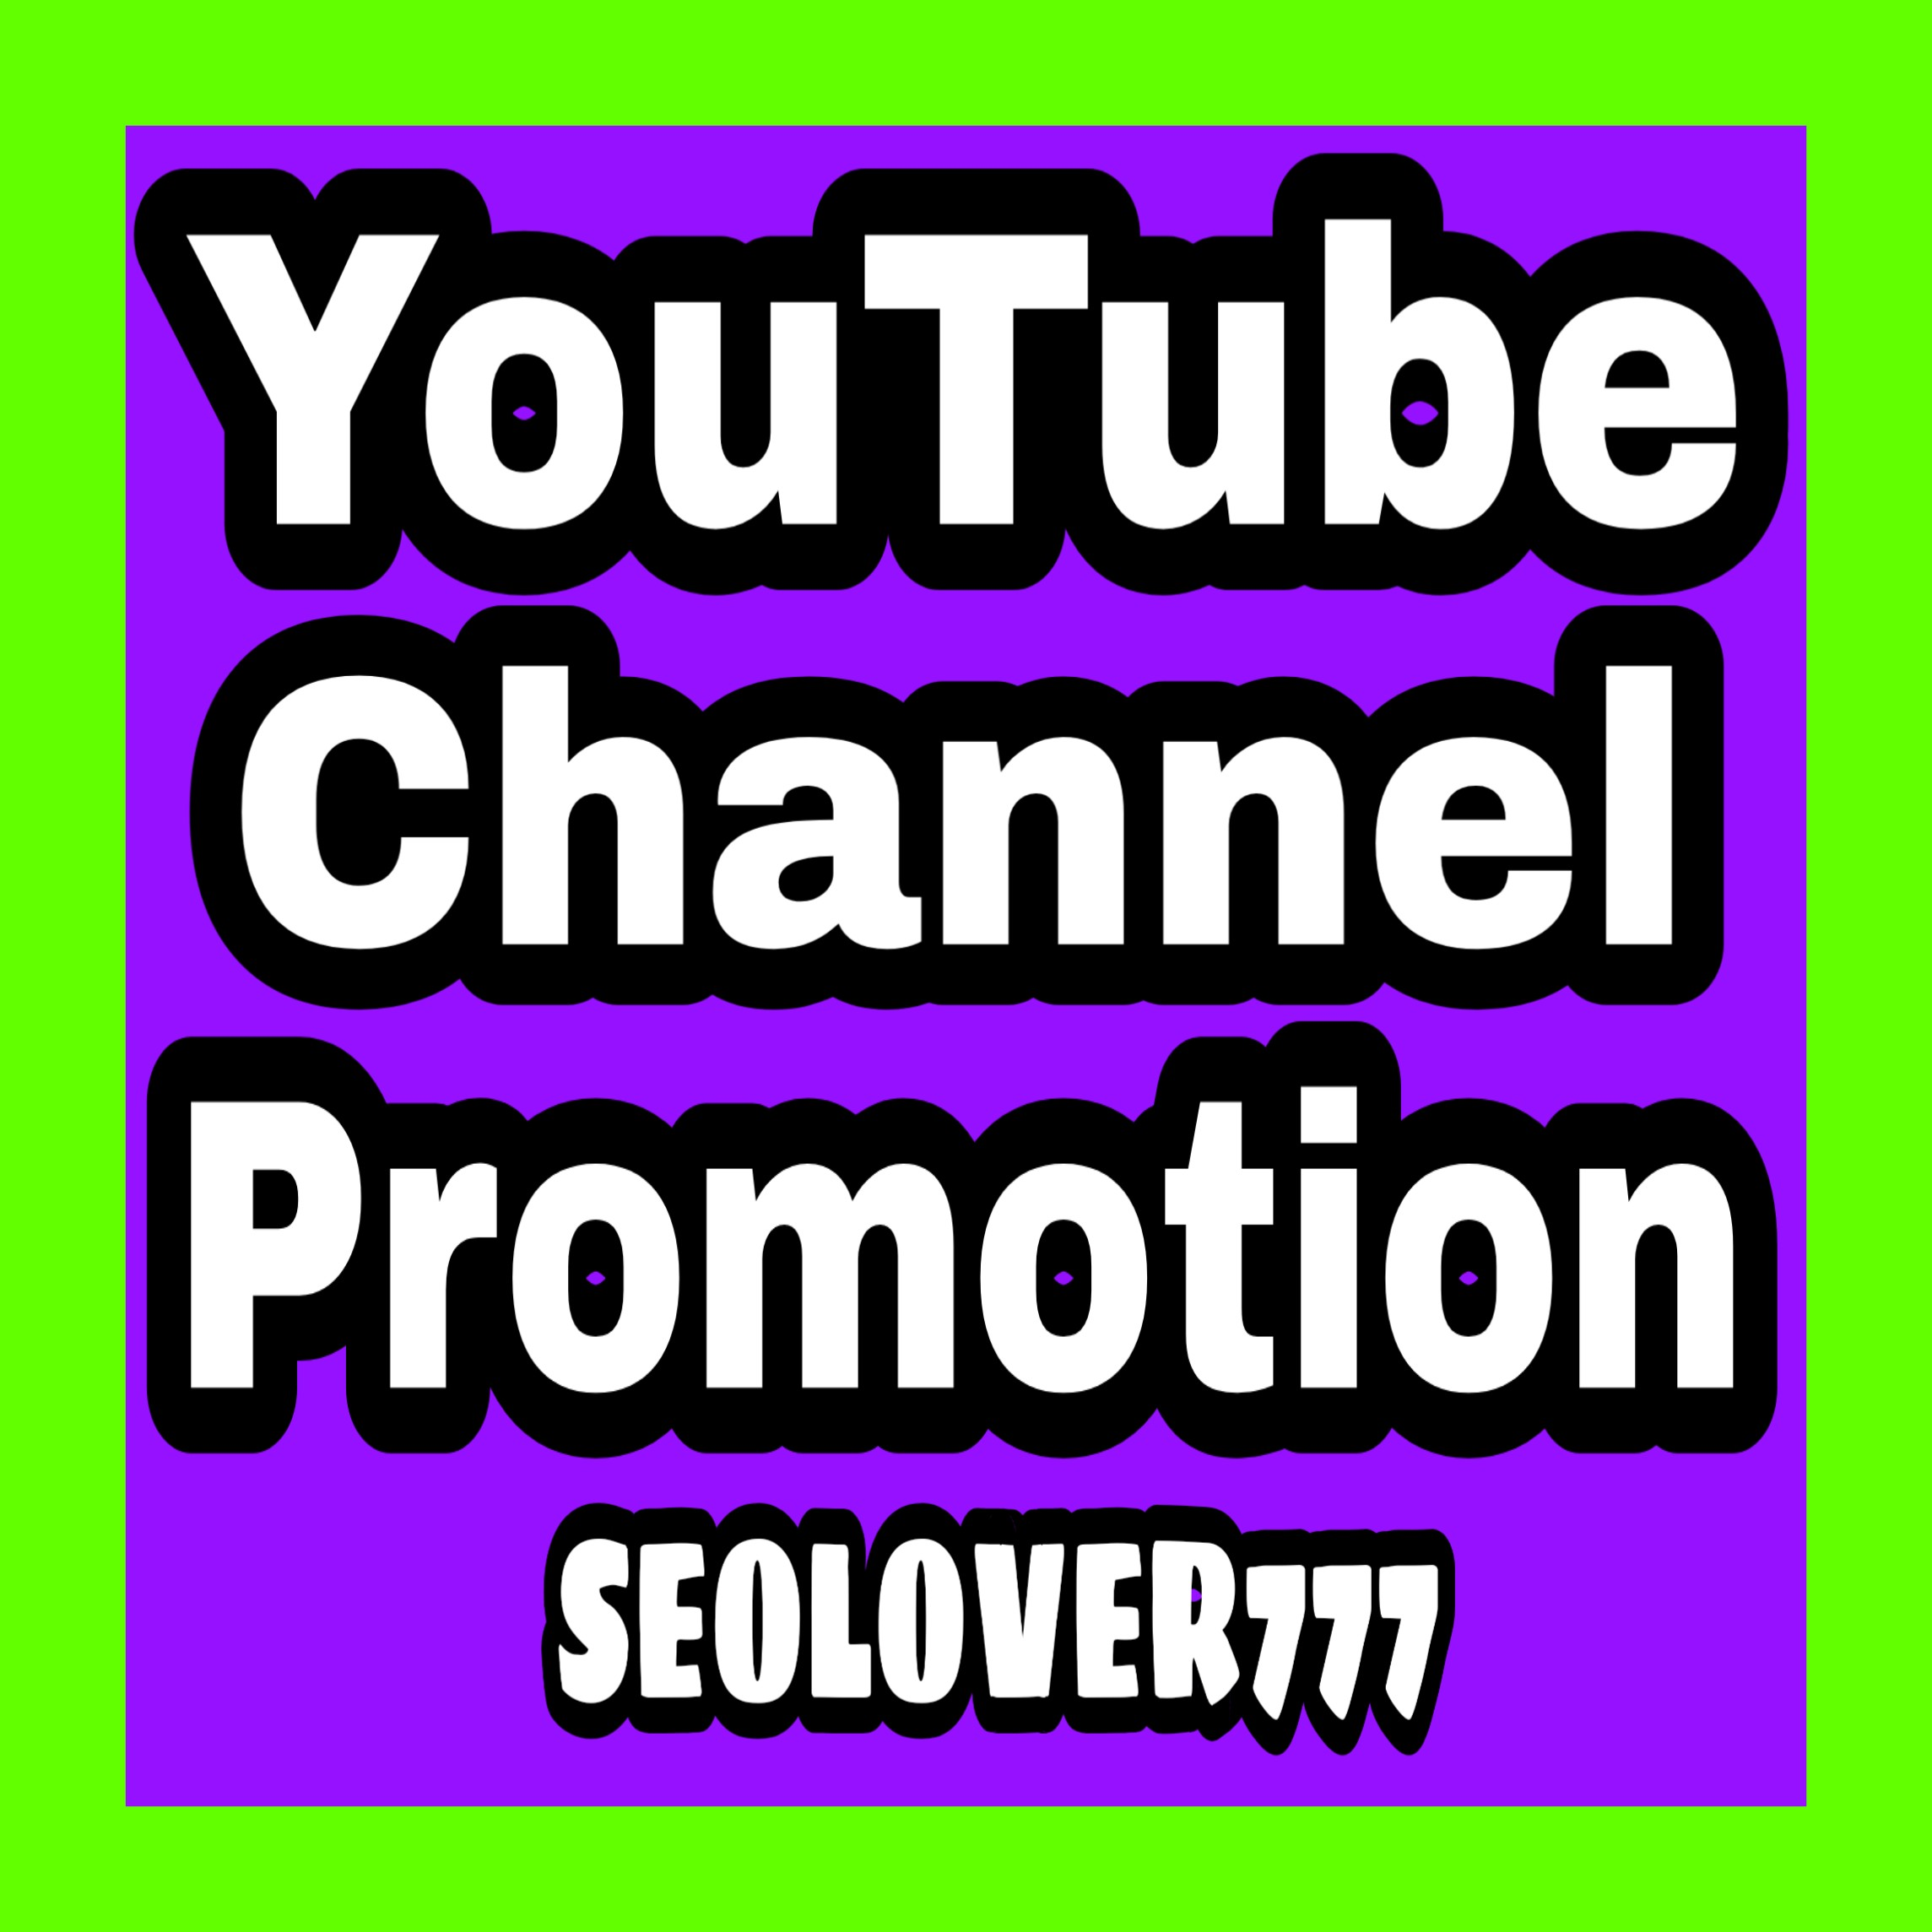 YouTube organic promotion via real & active users with fast completed